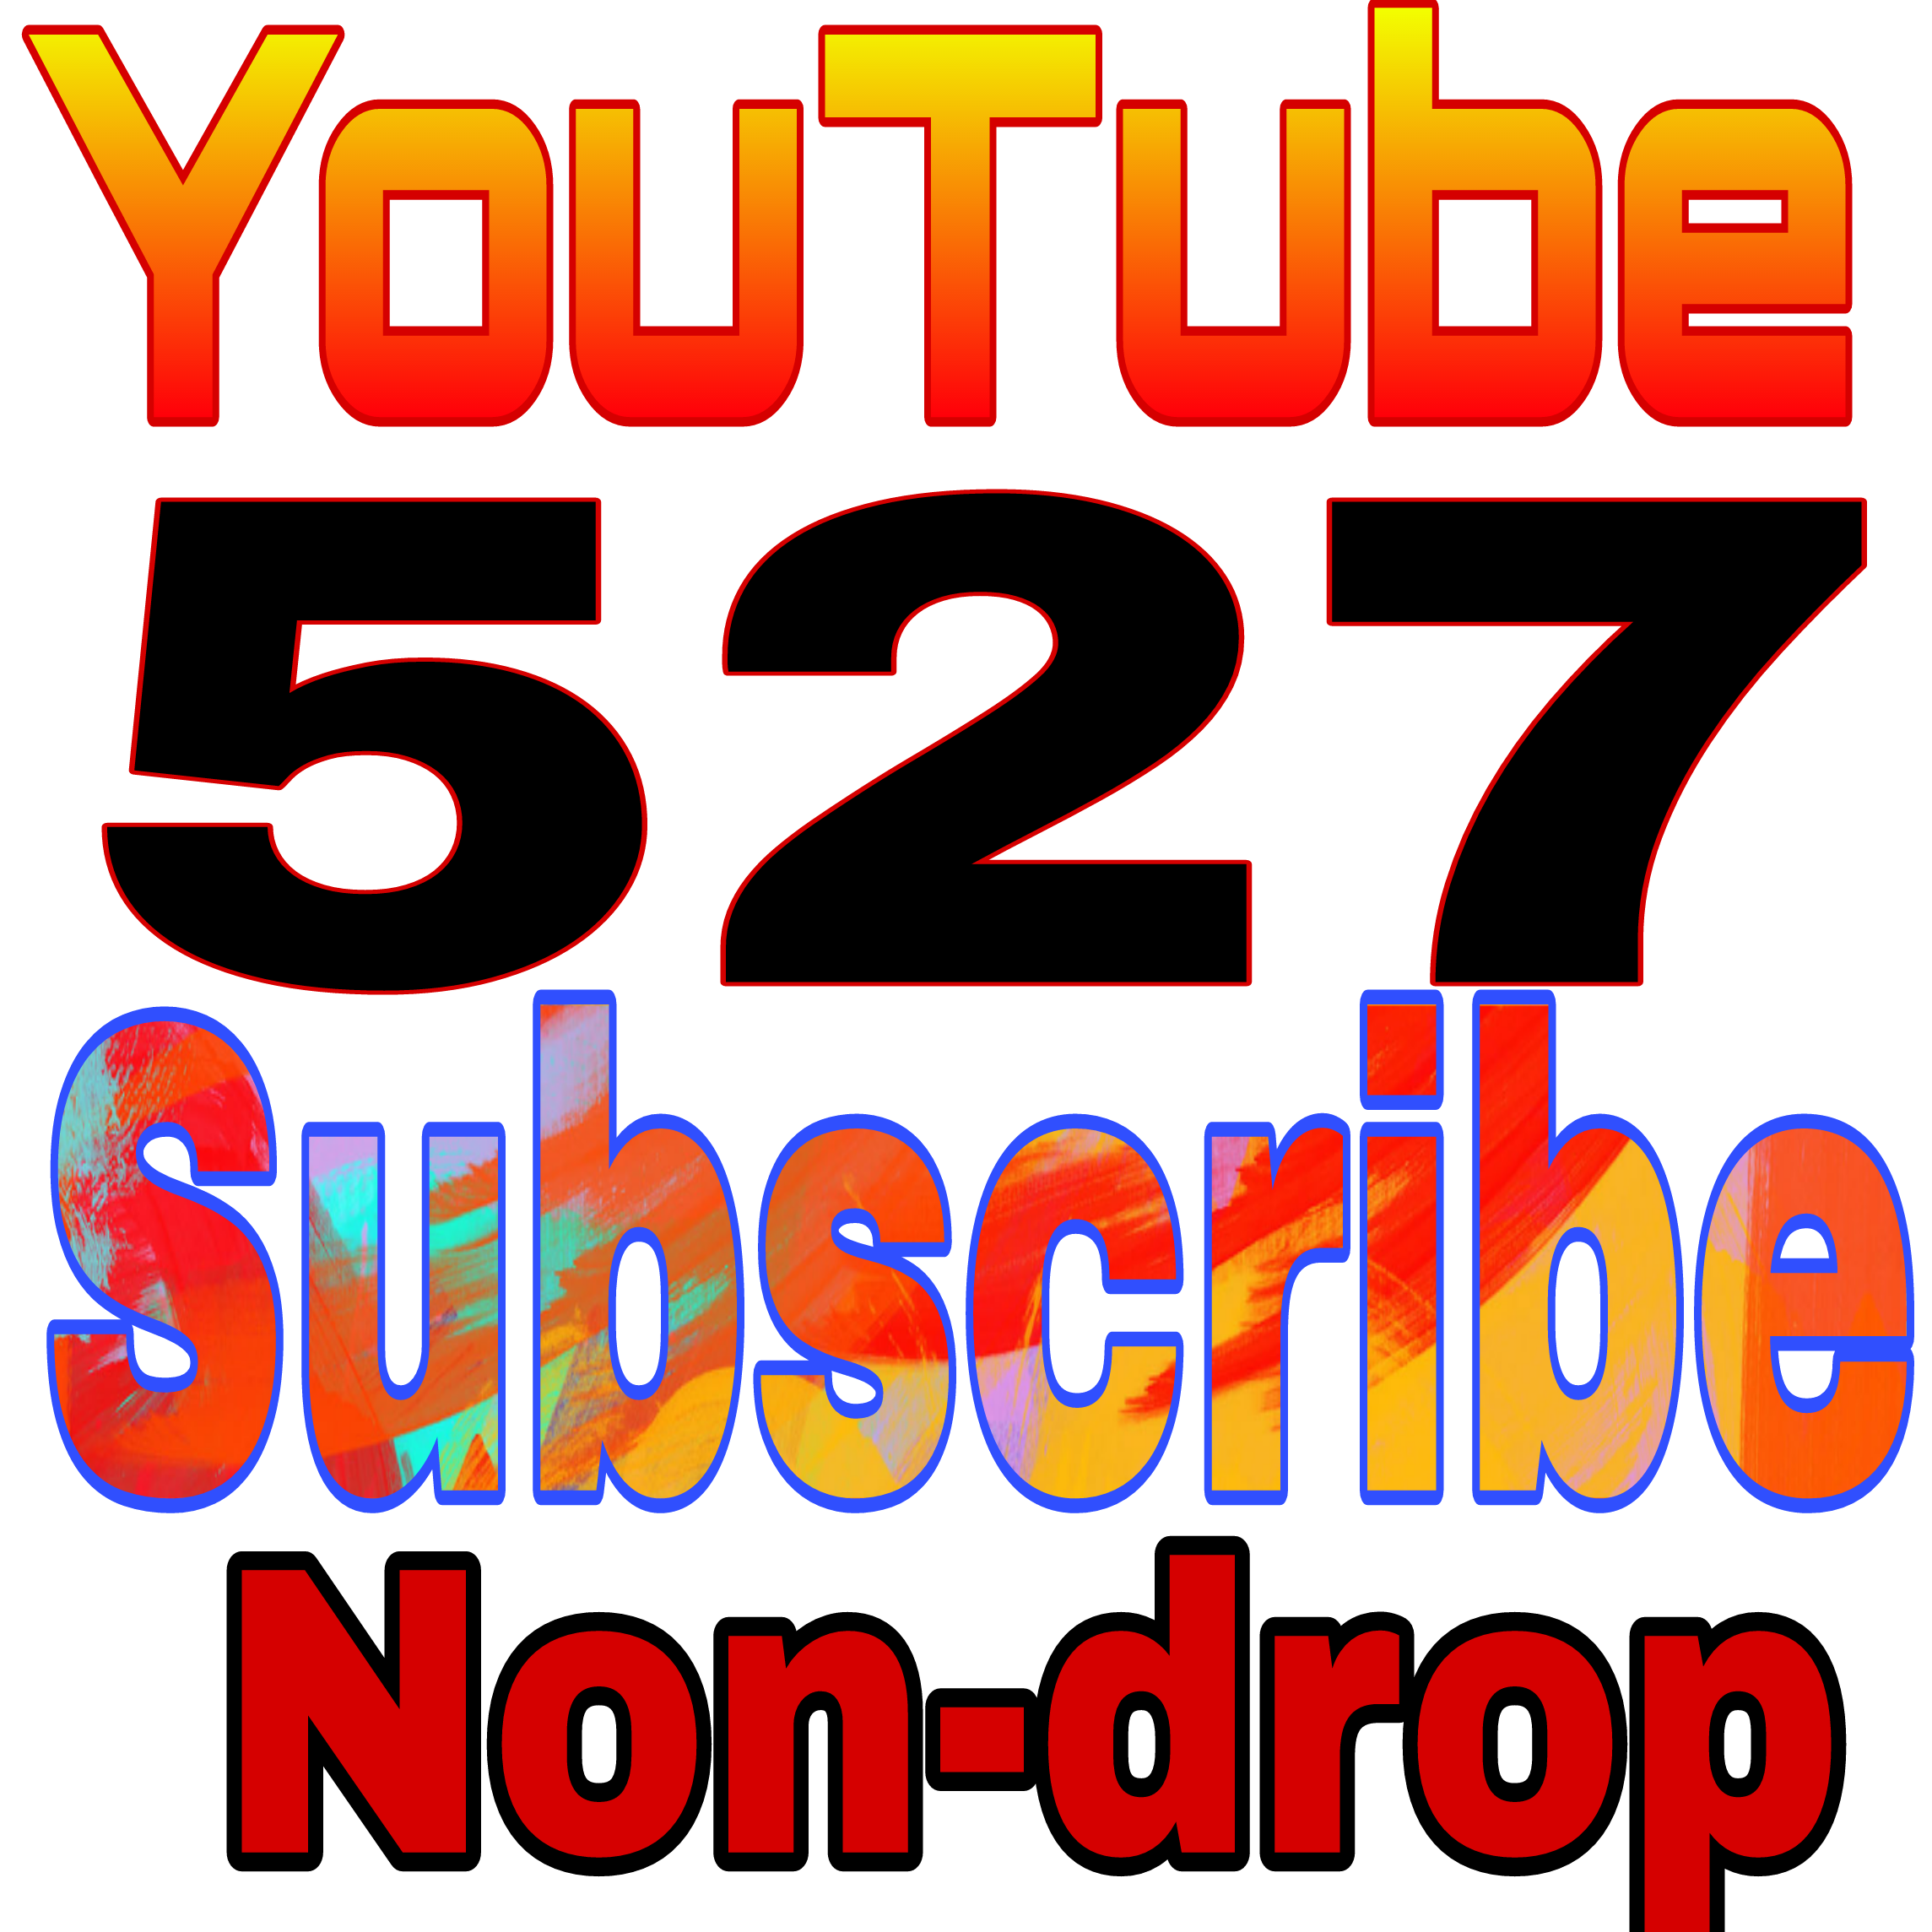 Wonderful offer 527+ YT channel subs non drop refill guaranteed in 12-96 hours delivery